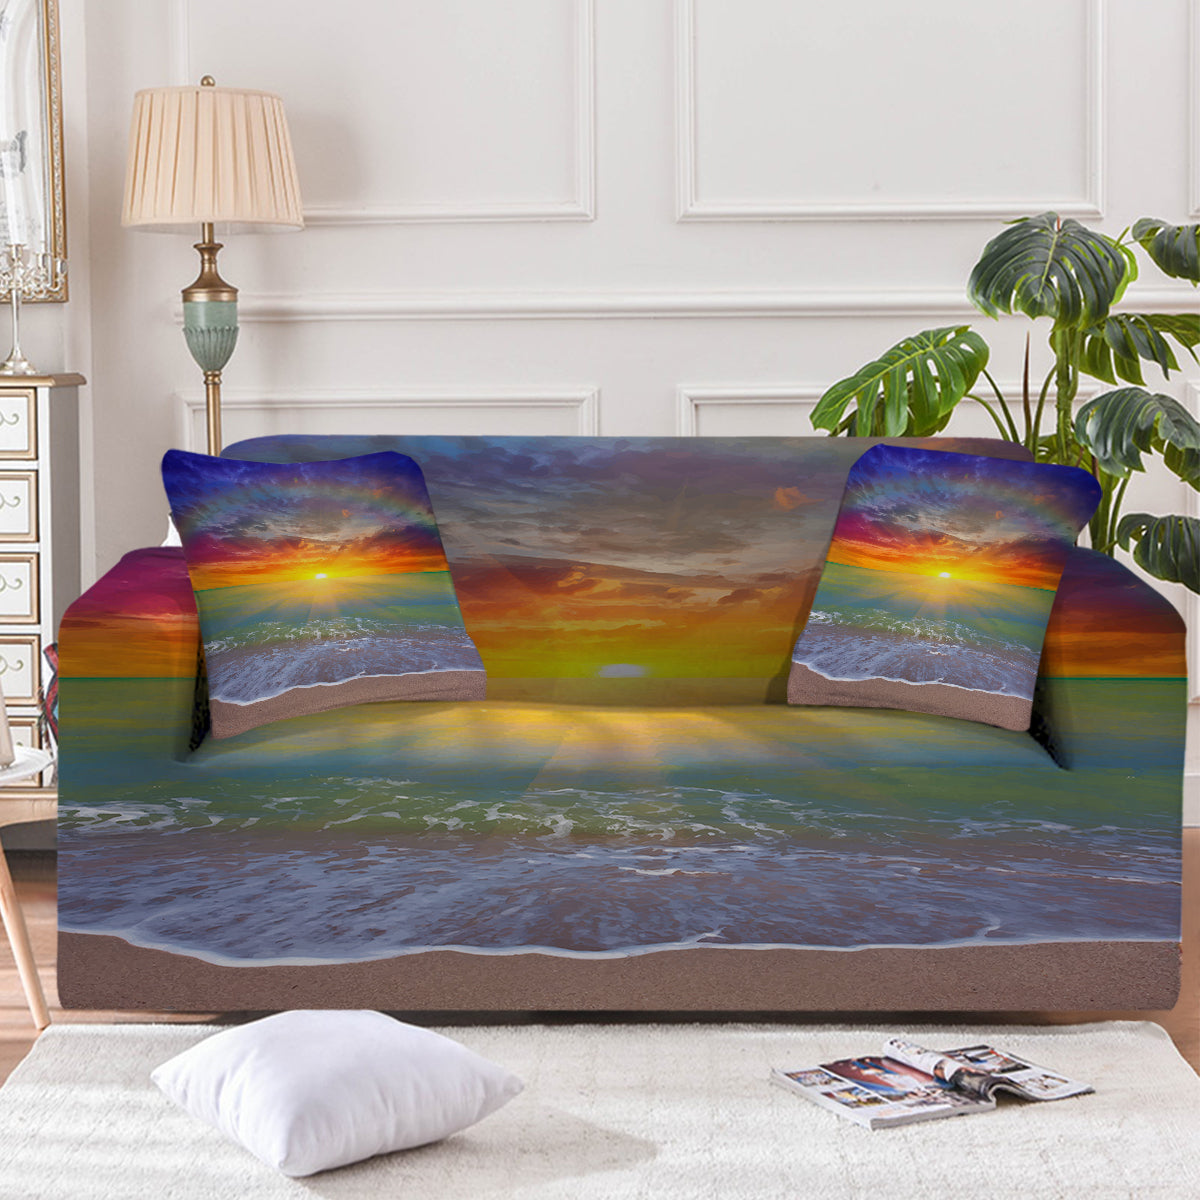 Sunset Beach Couch Cover